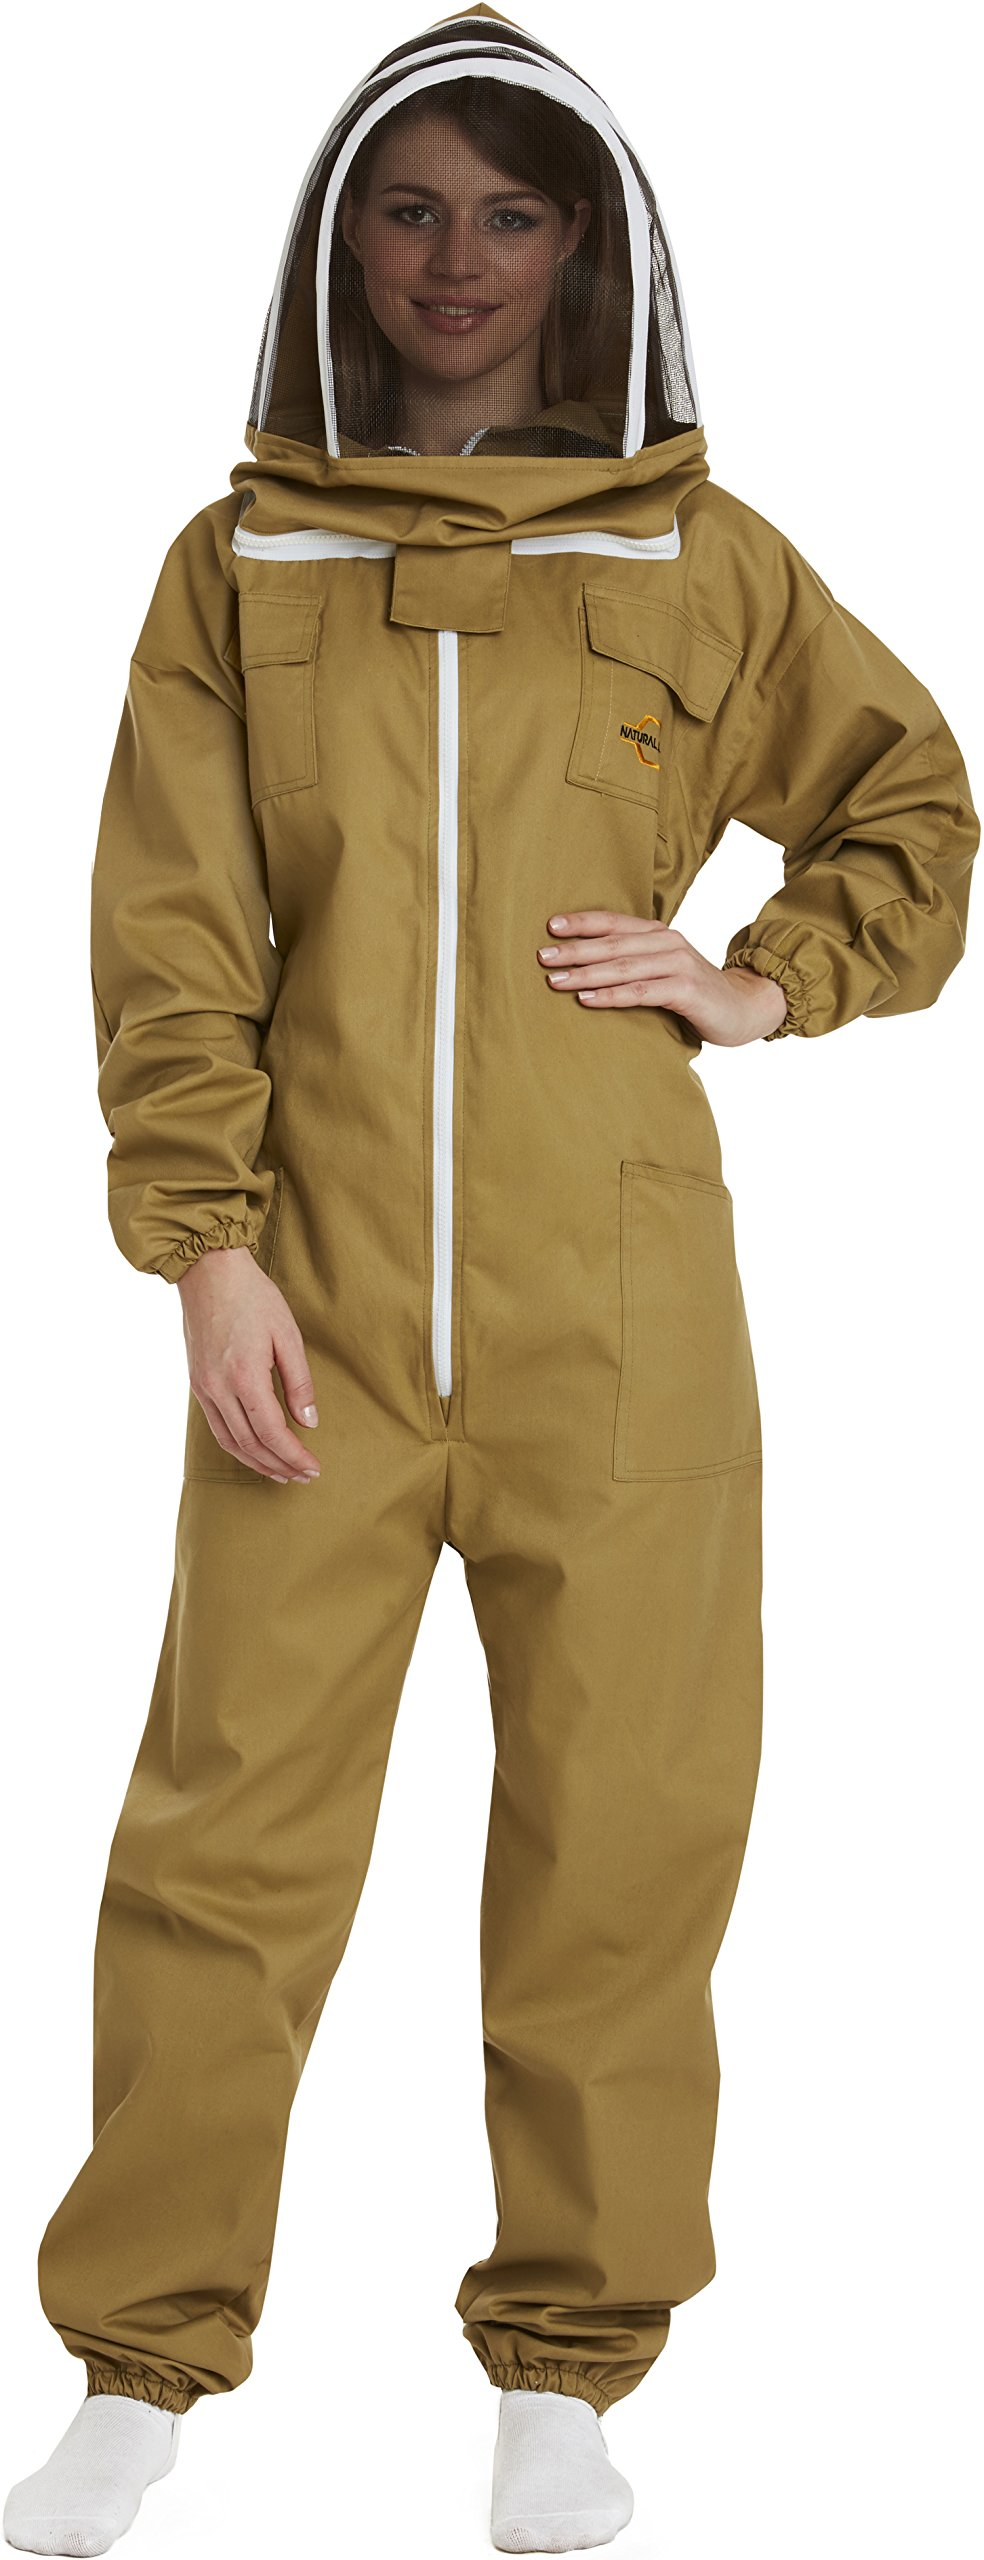 NATURAL APIARY - Apiarist Beekeeping Suit - Khaki - (All-in-One) - Fencing Veil - Total Protection for Professional & Beginner Beekeepers - X Large by Natural Apiary (Image #2)